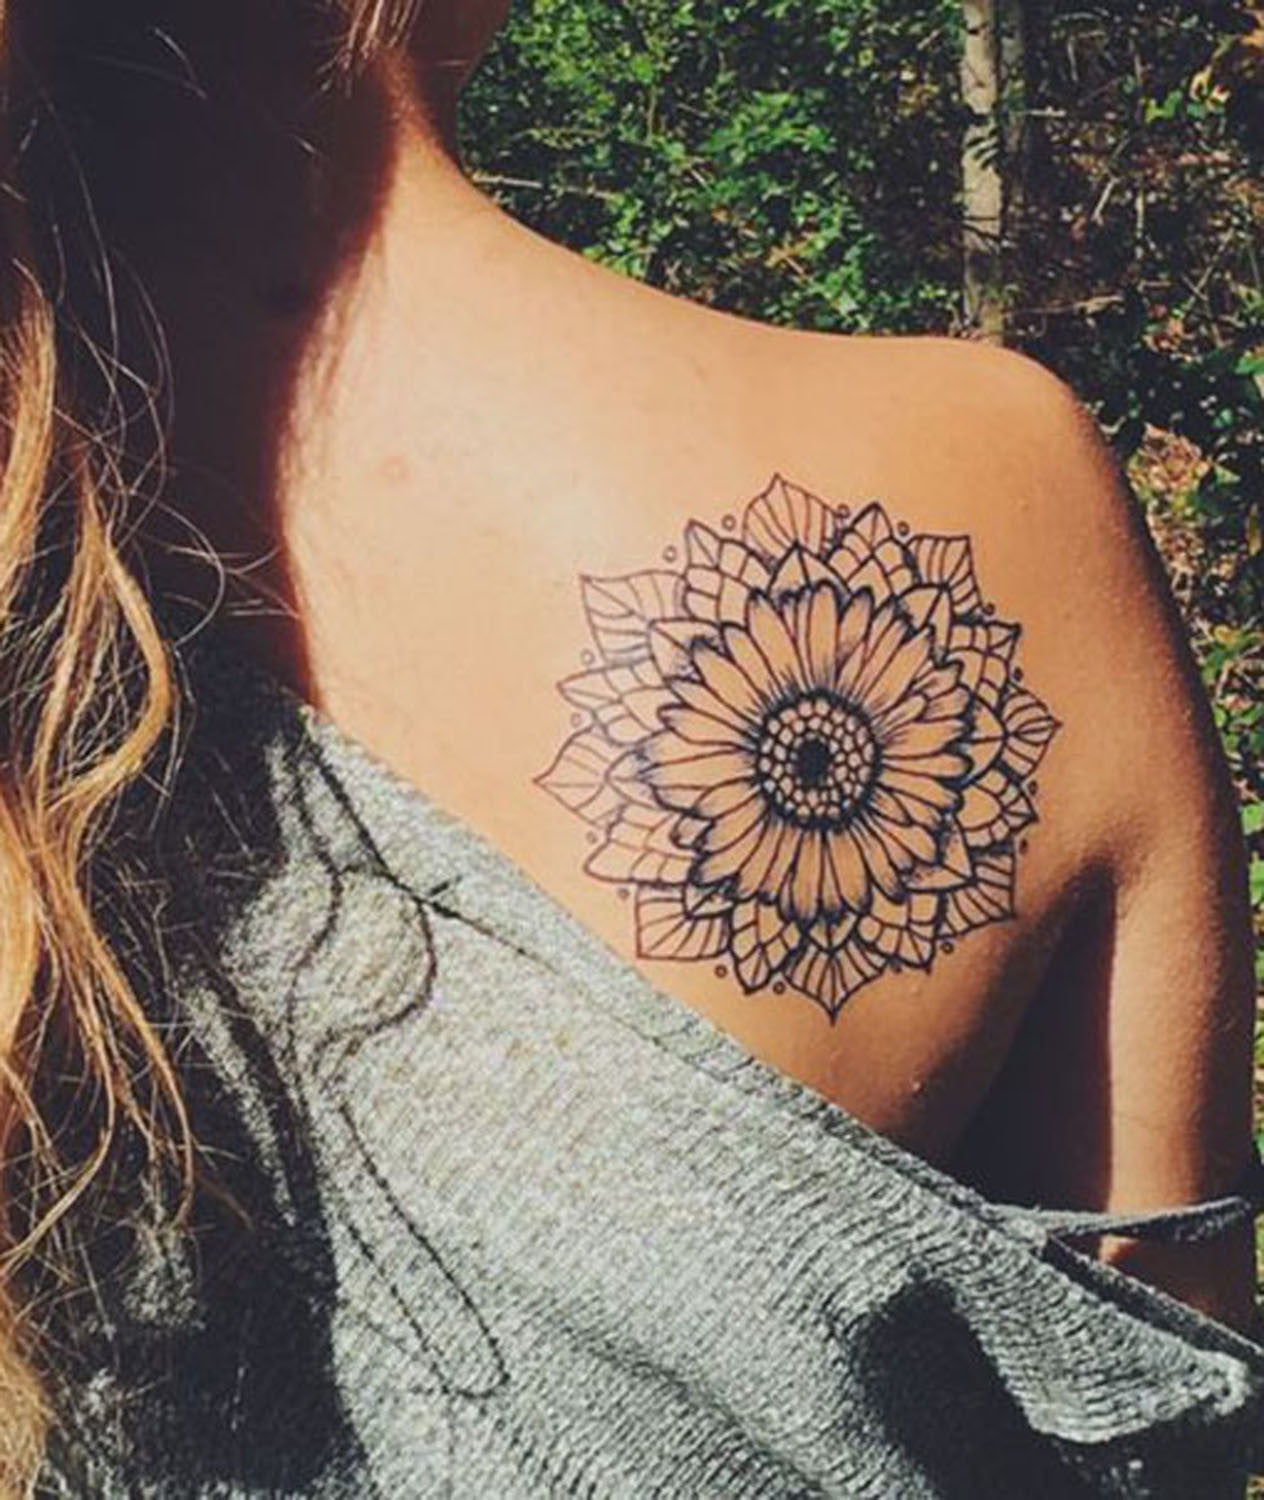 Mandala Sunflower Black and White Back Shoulder Tattoo Ideas at MyBodiArt.com